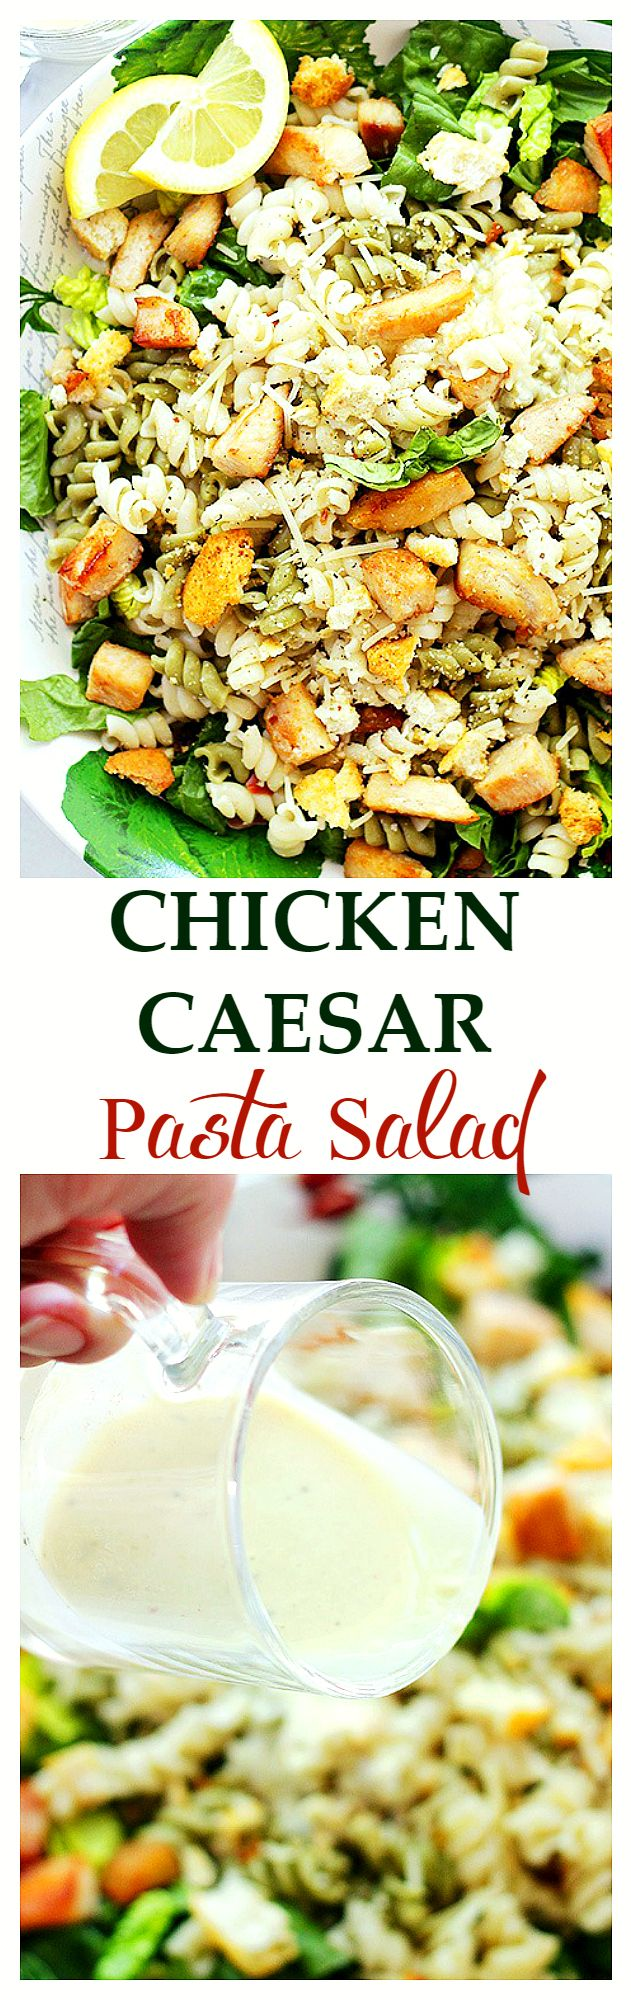 Chicken Caesar Pasta Salad with Light Caesar Dressing: Pasta and salad greens tossed with grilled chicken and a delicious, homemade (NO YOLKS!) Light Caesar Dressing. Get the recipe on diethood.com